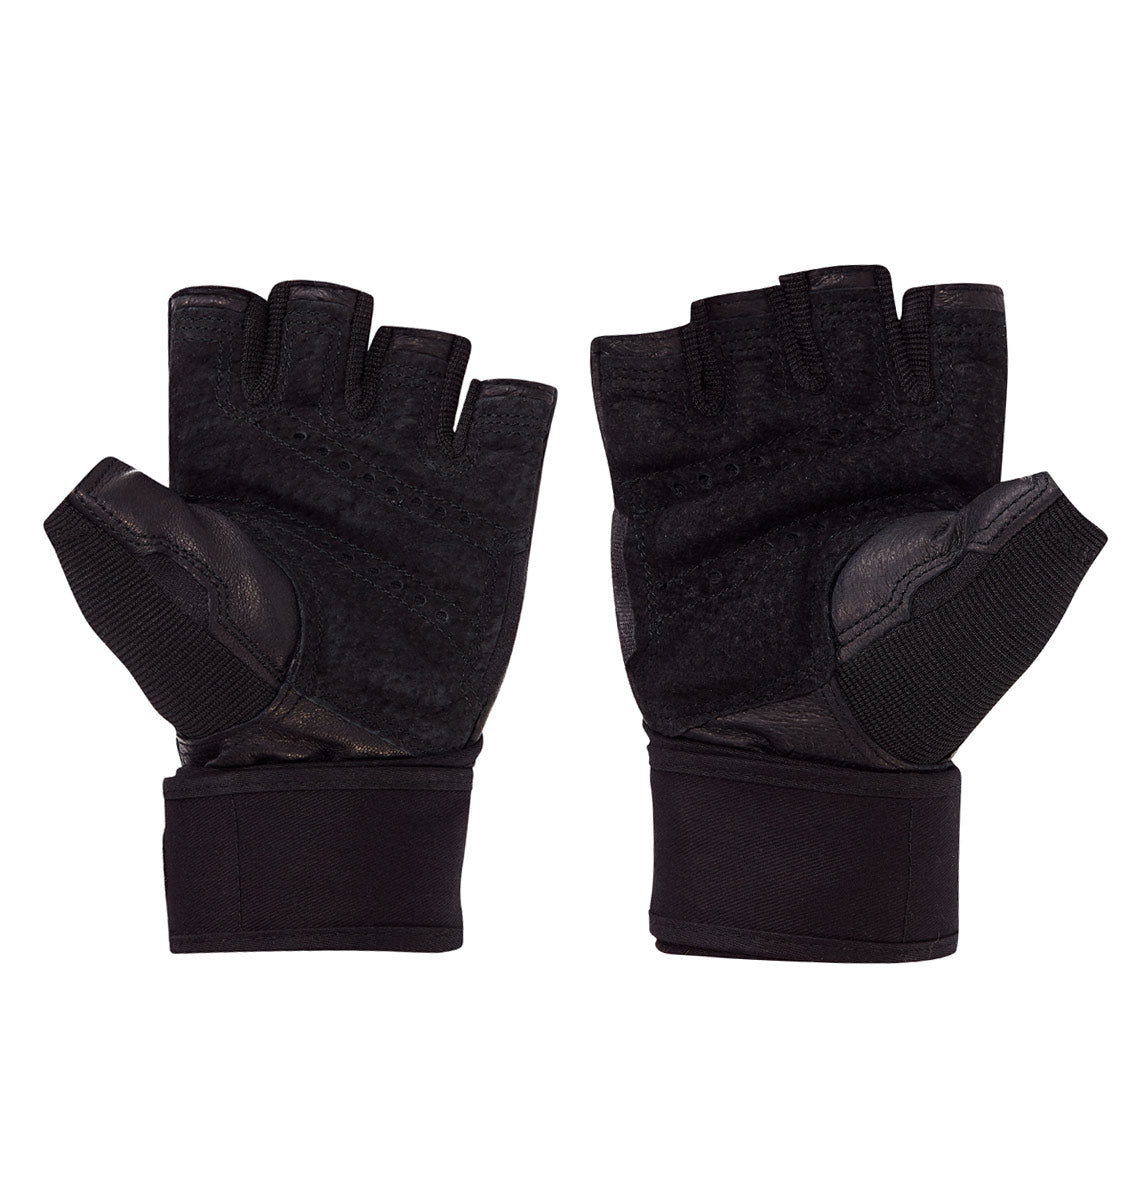 0140 Harbinger Pro Wristwrap Gym Gloves Pair Palm